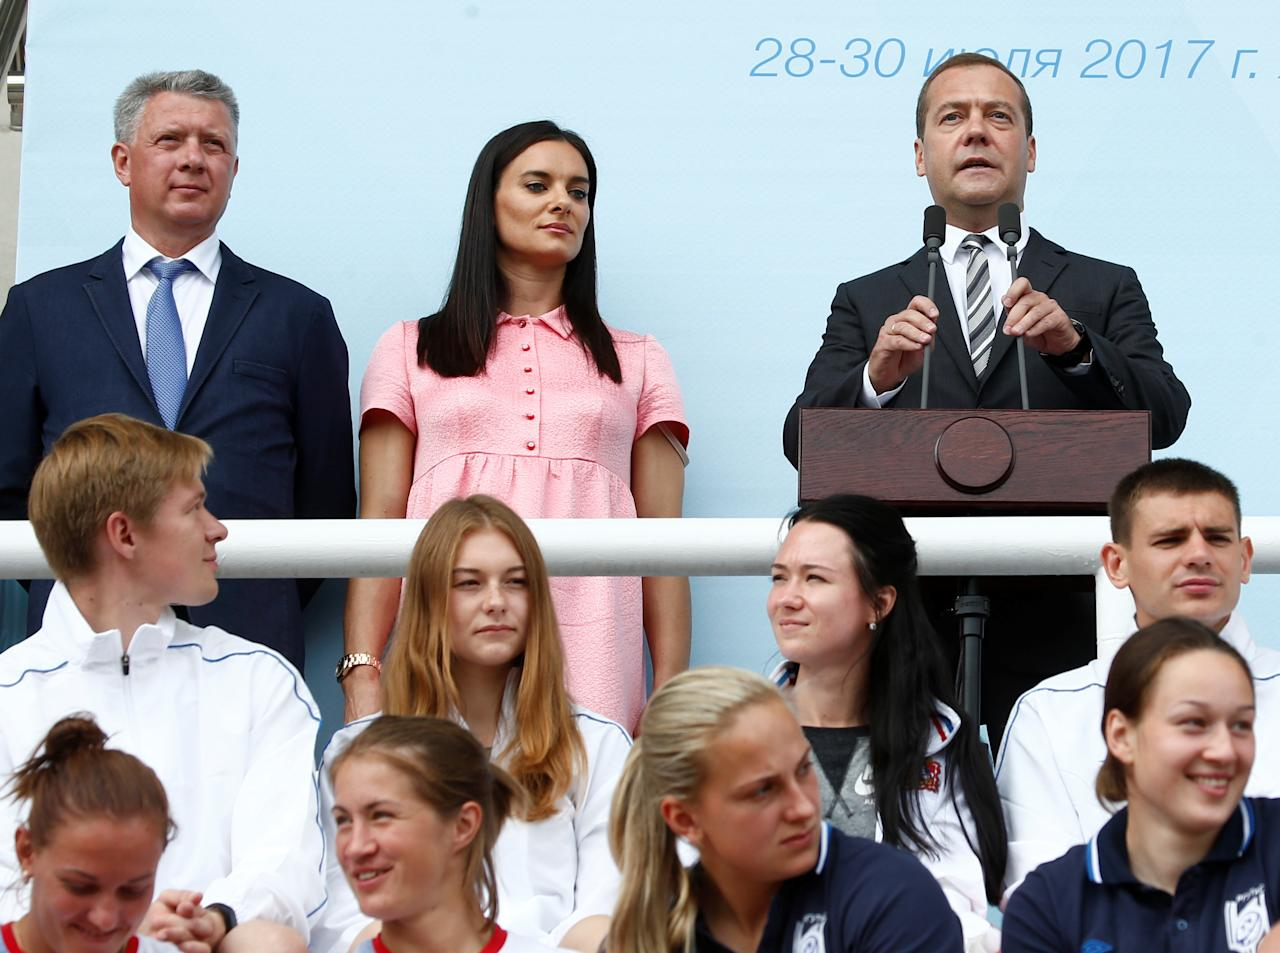 Athletics - Russian Athletics Cup - Meteor Stadium, Zhukovsky, Russia - July 28, 2017 - Russian Prime Minister Dmitry Medvedev, two time Olympic pole vault champion Yelena Isinbayeva and President of the Russia's athletics federation Dmitri Shlyakhtin attend an opening ceremony. REUTERS/Sergei Karpukhin